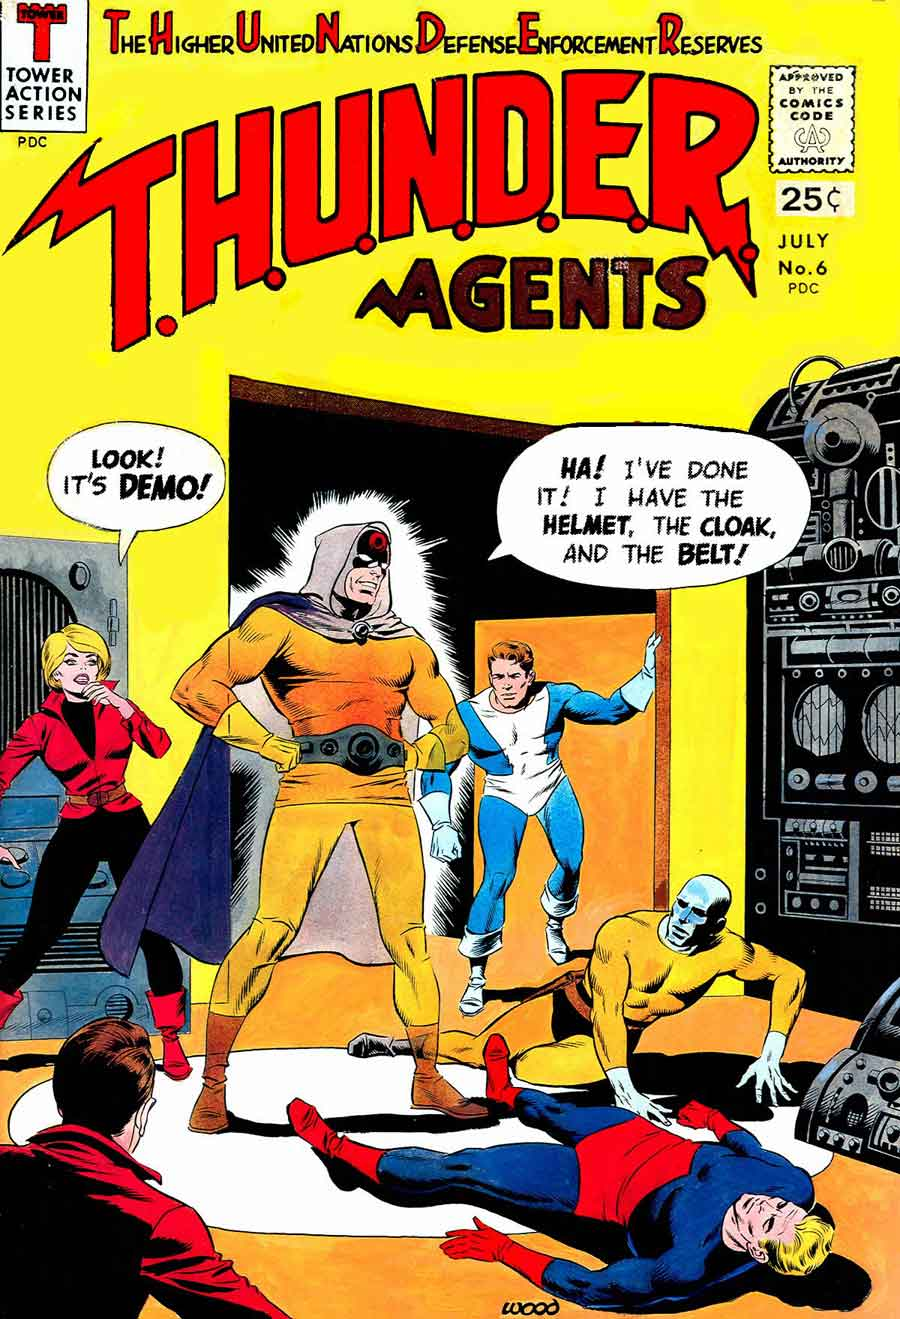 Thunder Agents v1 #6 tower silver age 1960s comic book cover art by Wally Wood